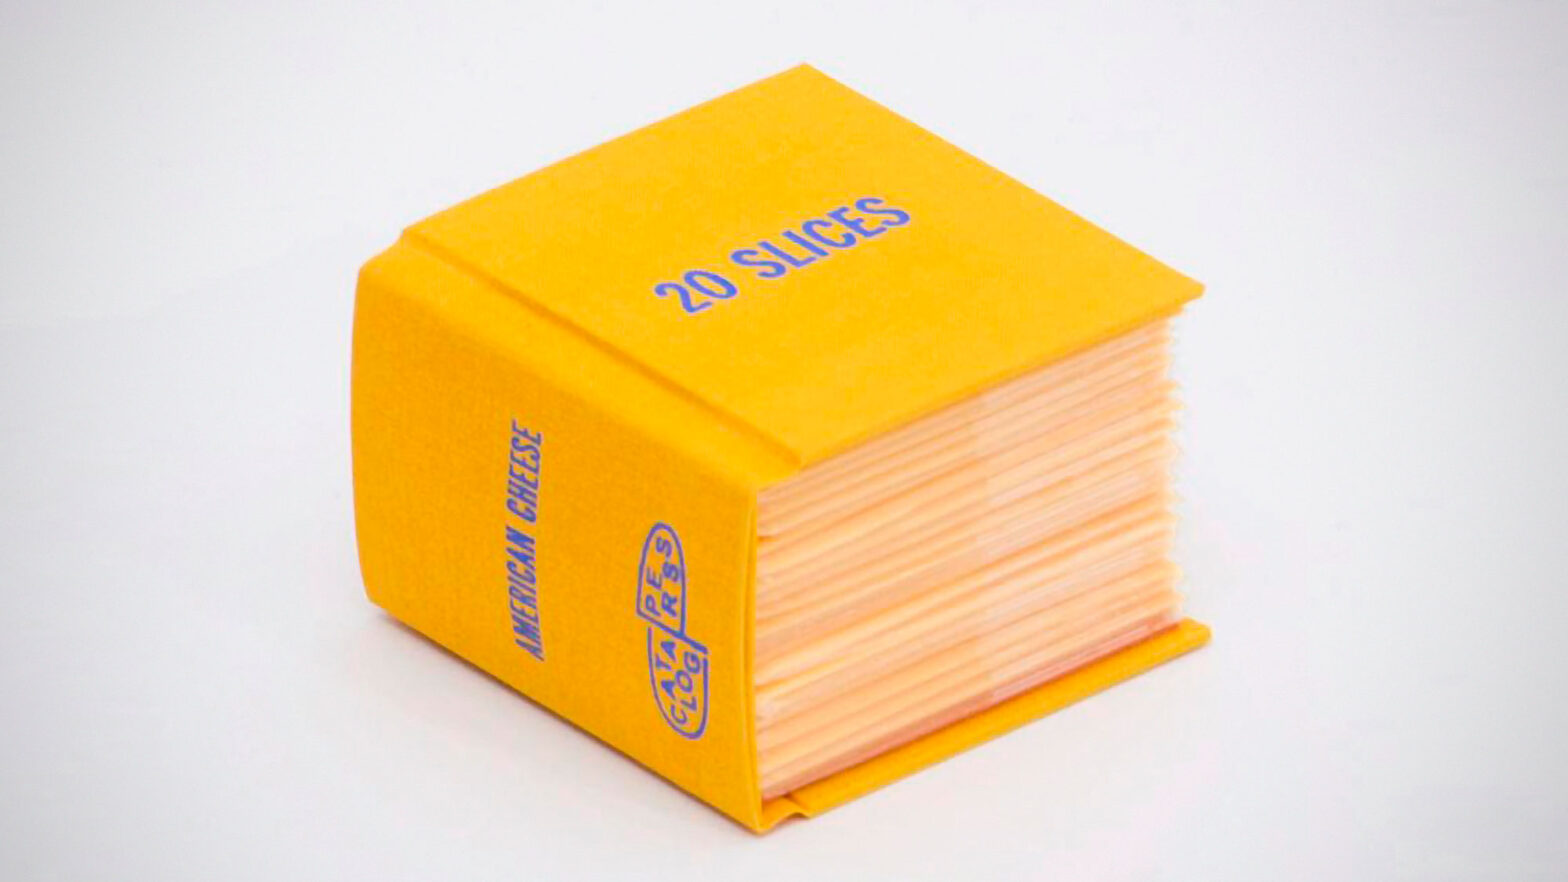 Book of 20 Slices of Cheese by Ben Denzer